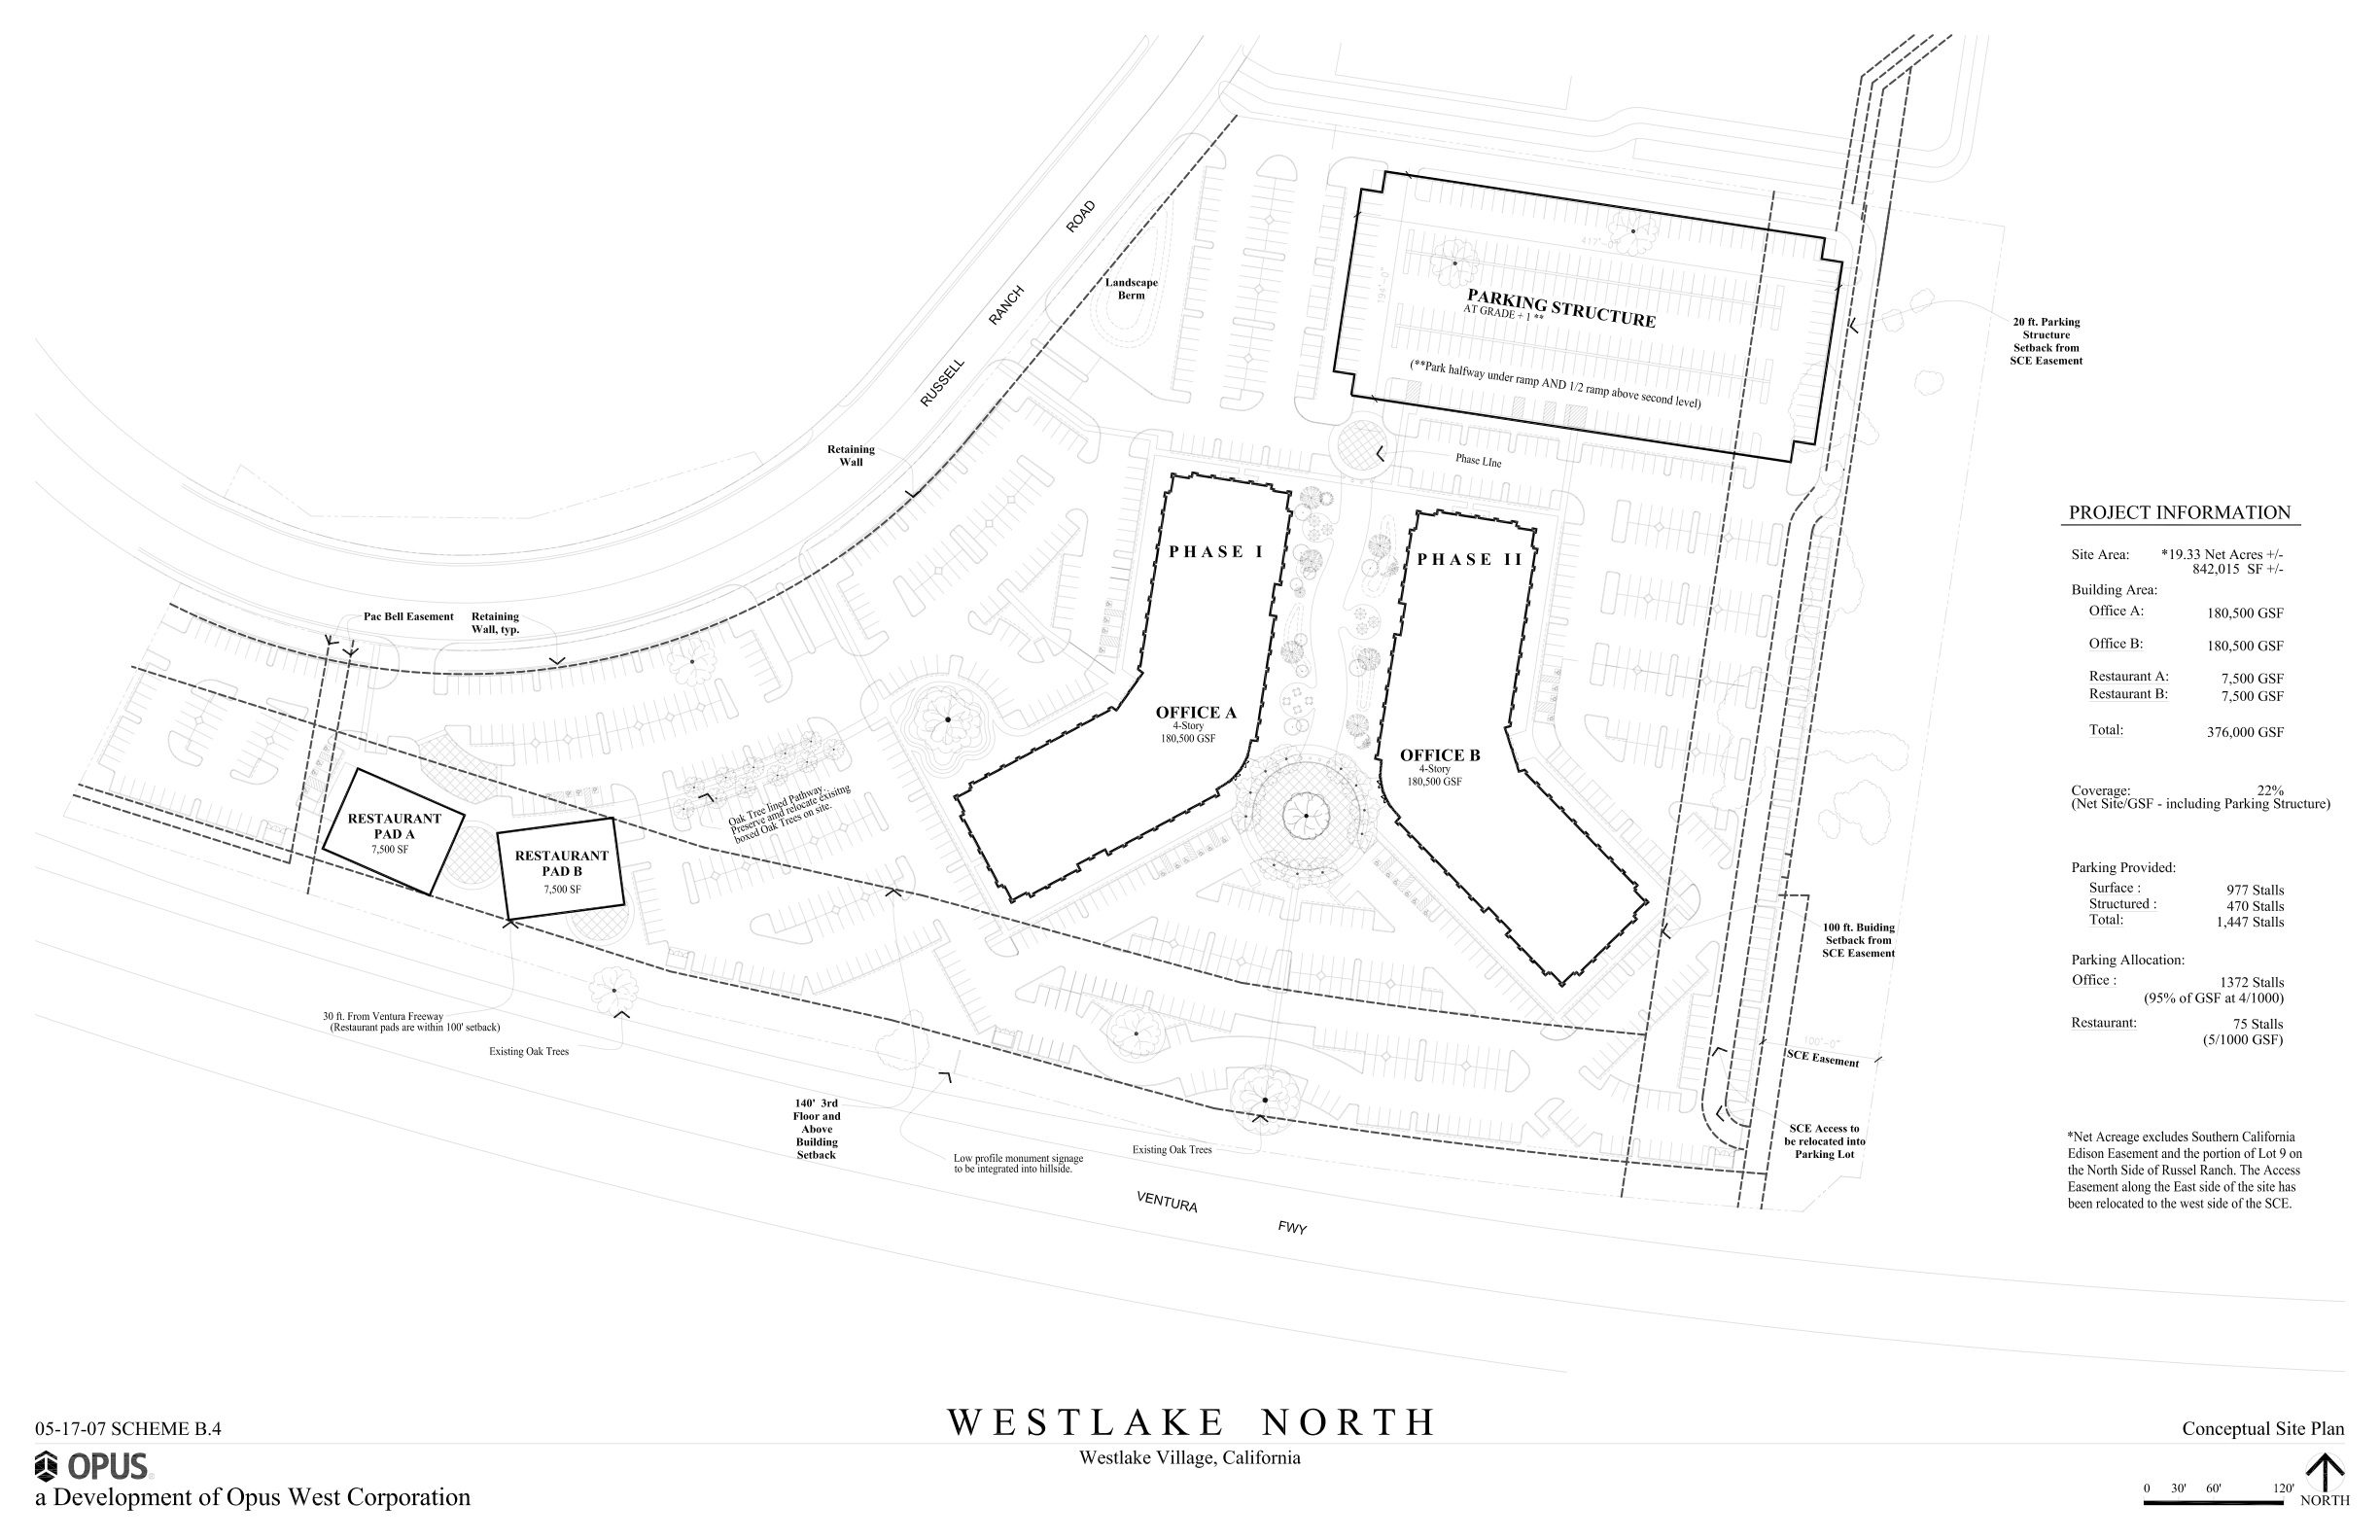 Update on Lot C/Opus West Russell Ranch